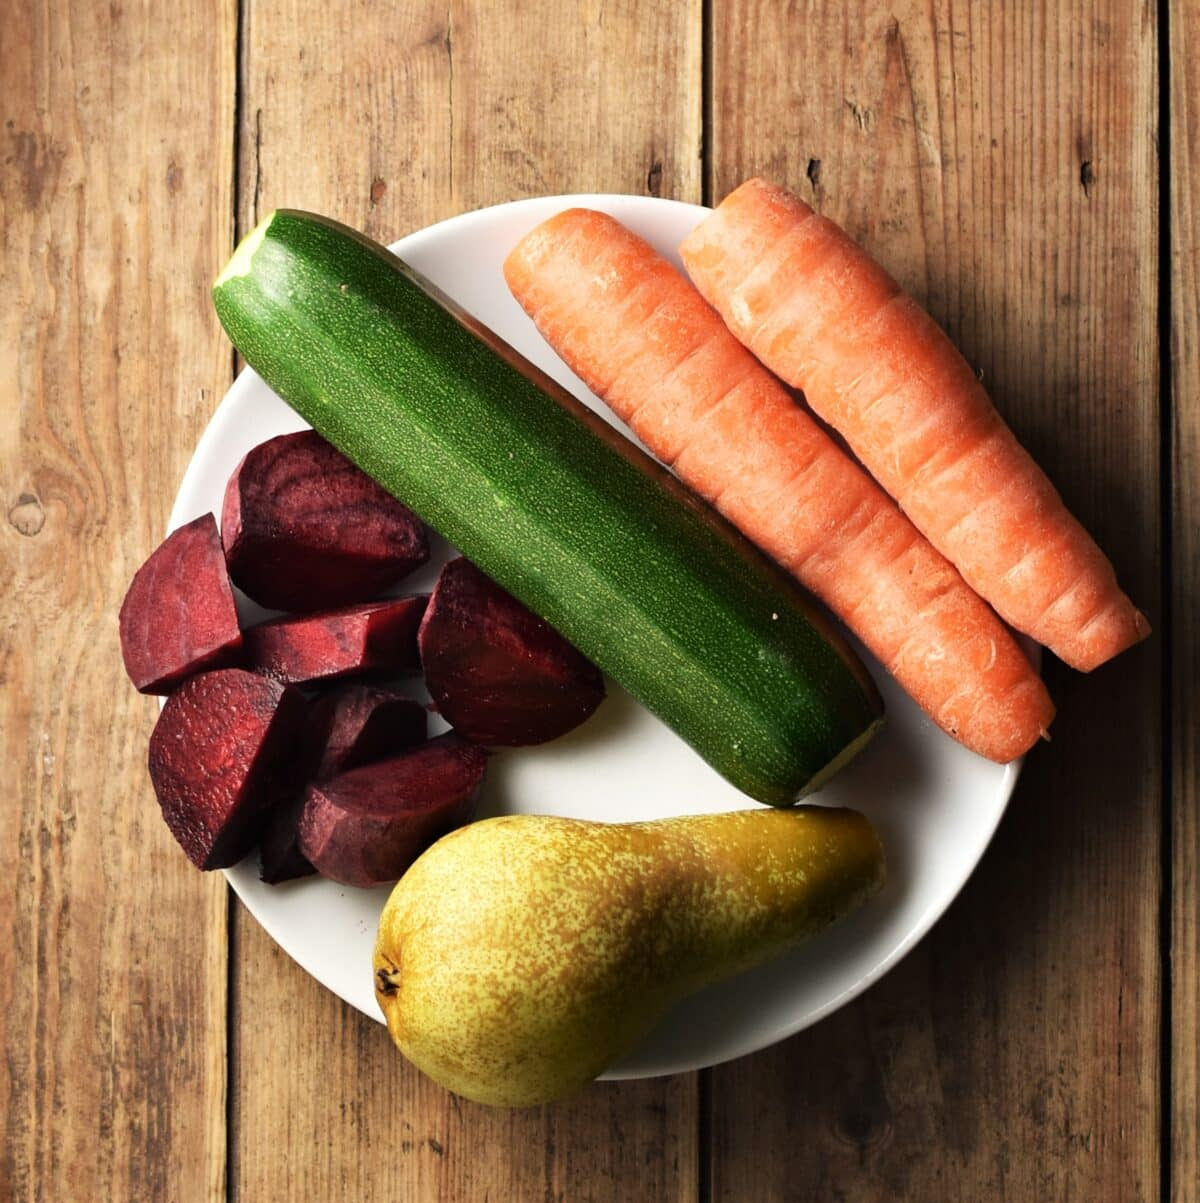 Chopped beet, zucchini, 2 carrots and pear on white plate.